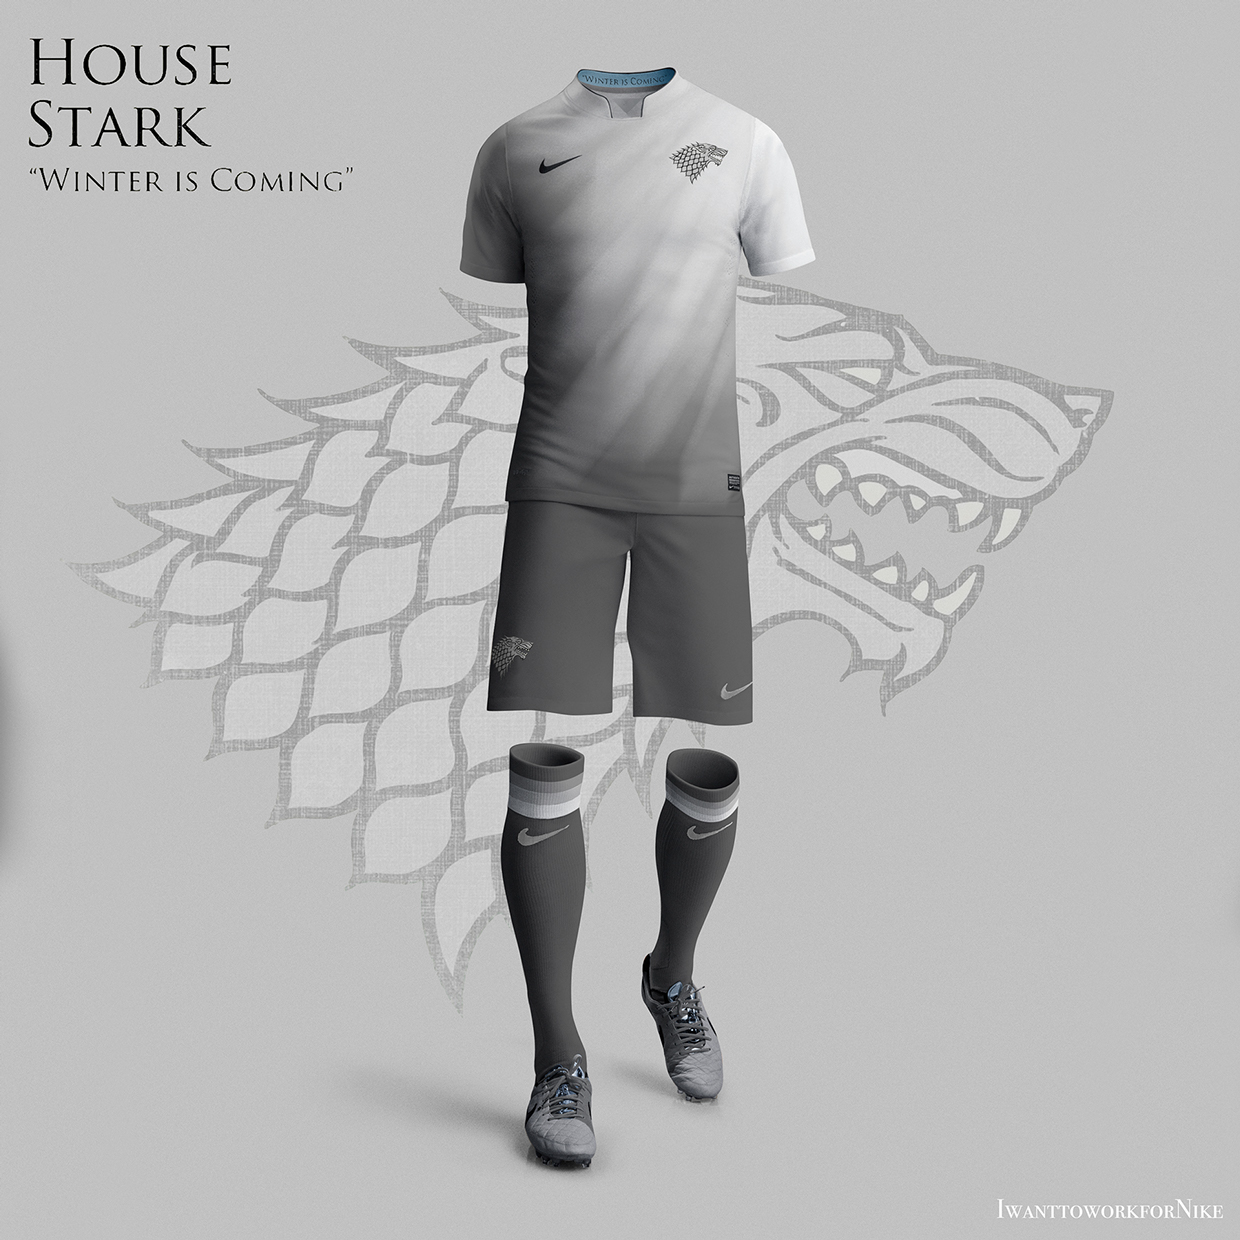 Westeros World Cup